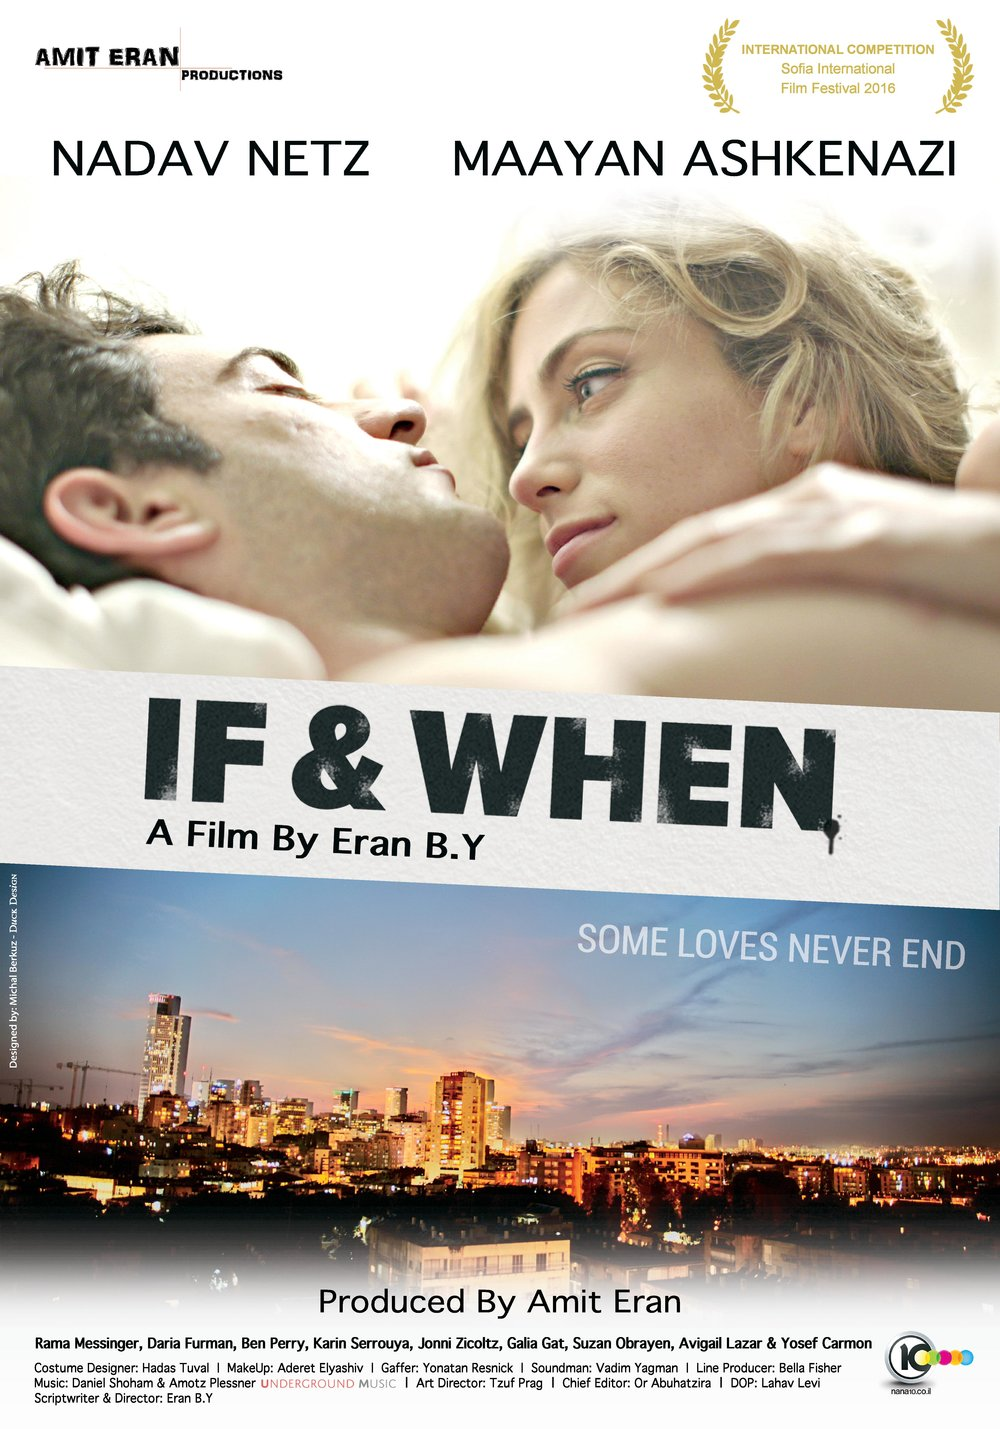 If & When film